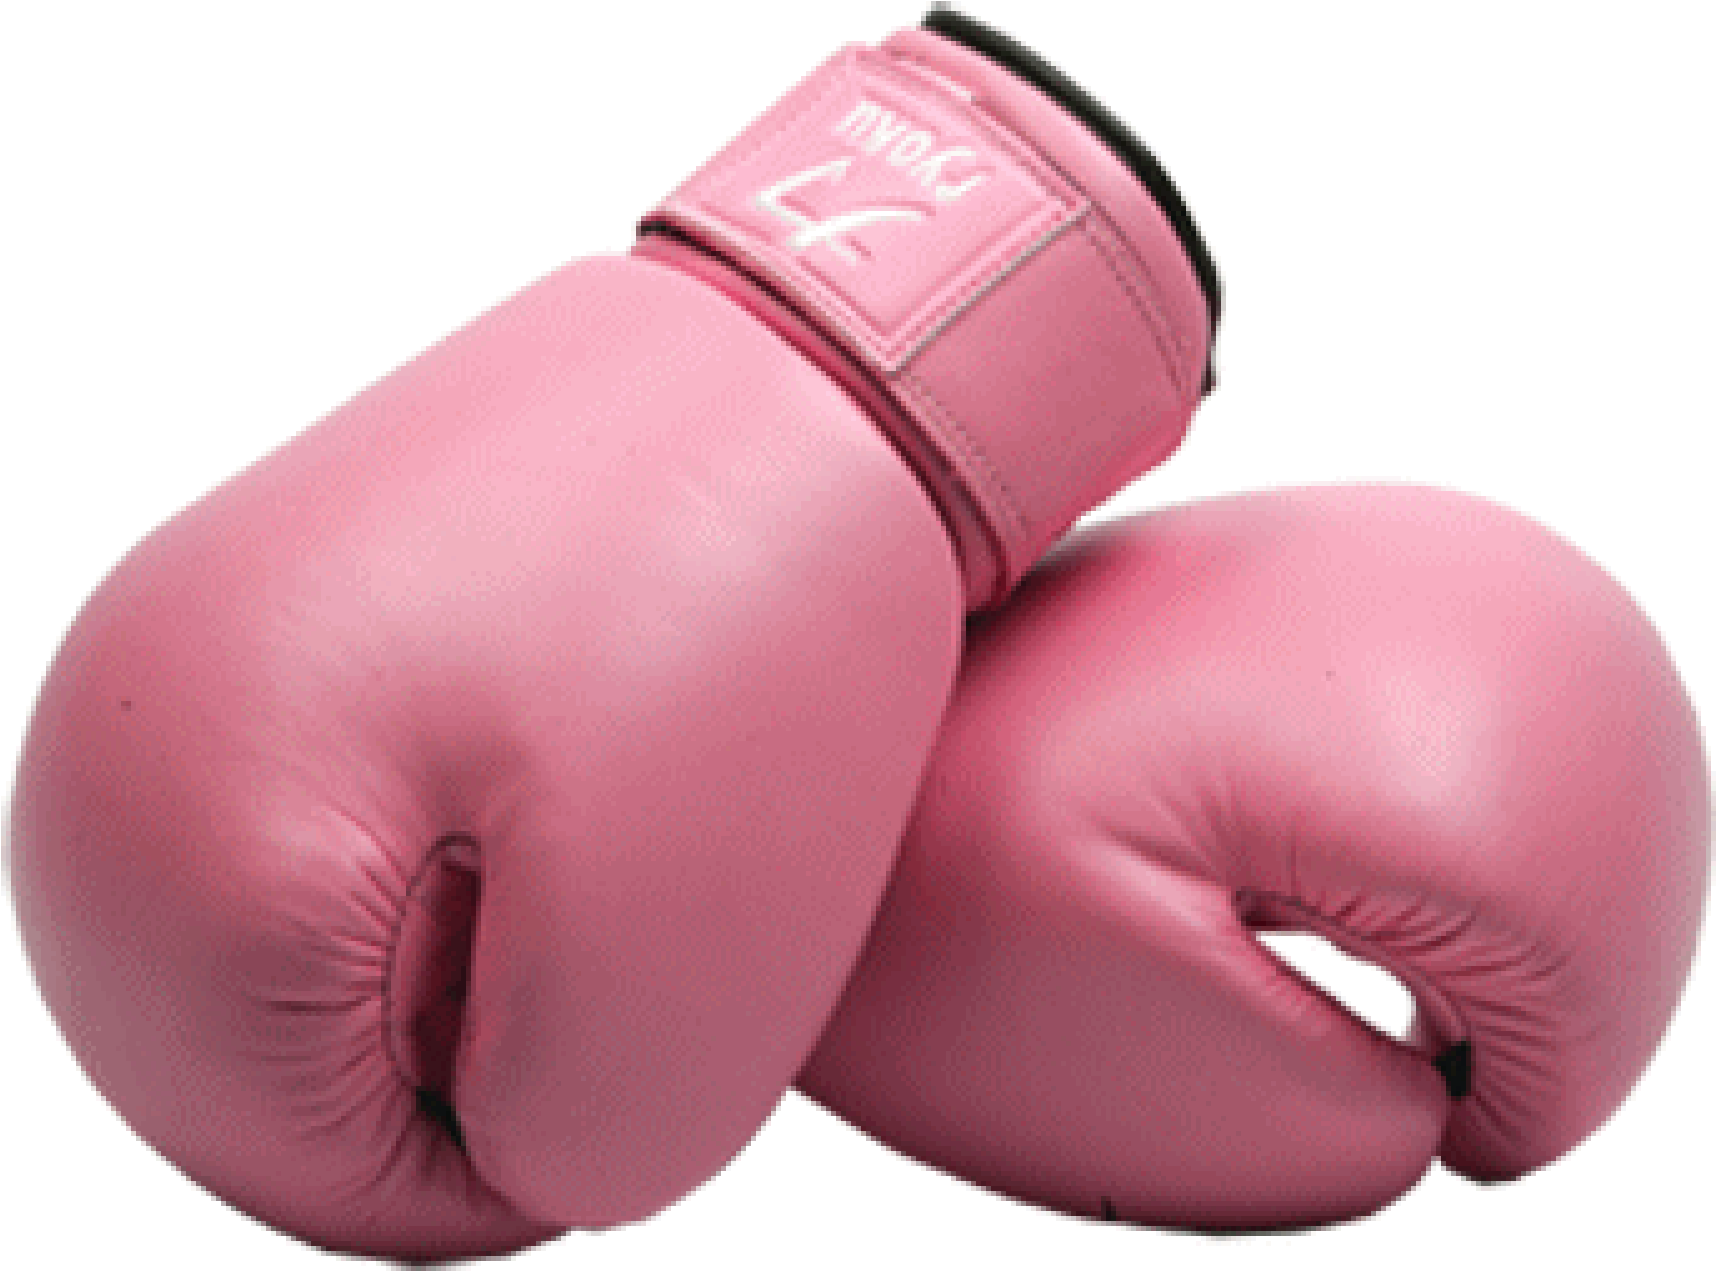 Female boxing gloves clipart banner royalty free download Boxer Clipart Boxing Glove - Boxing Gloves For Female , Transparent ... banner royalty free download